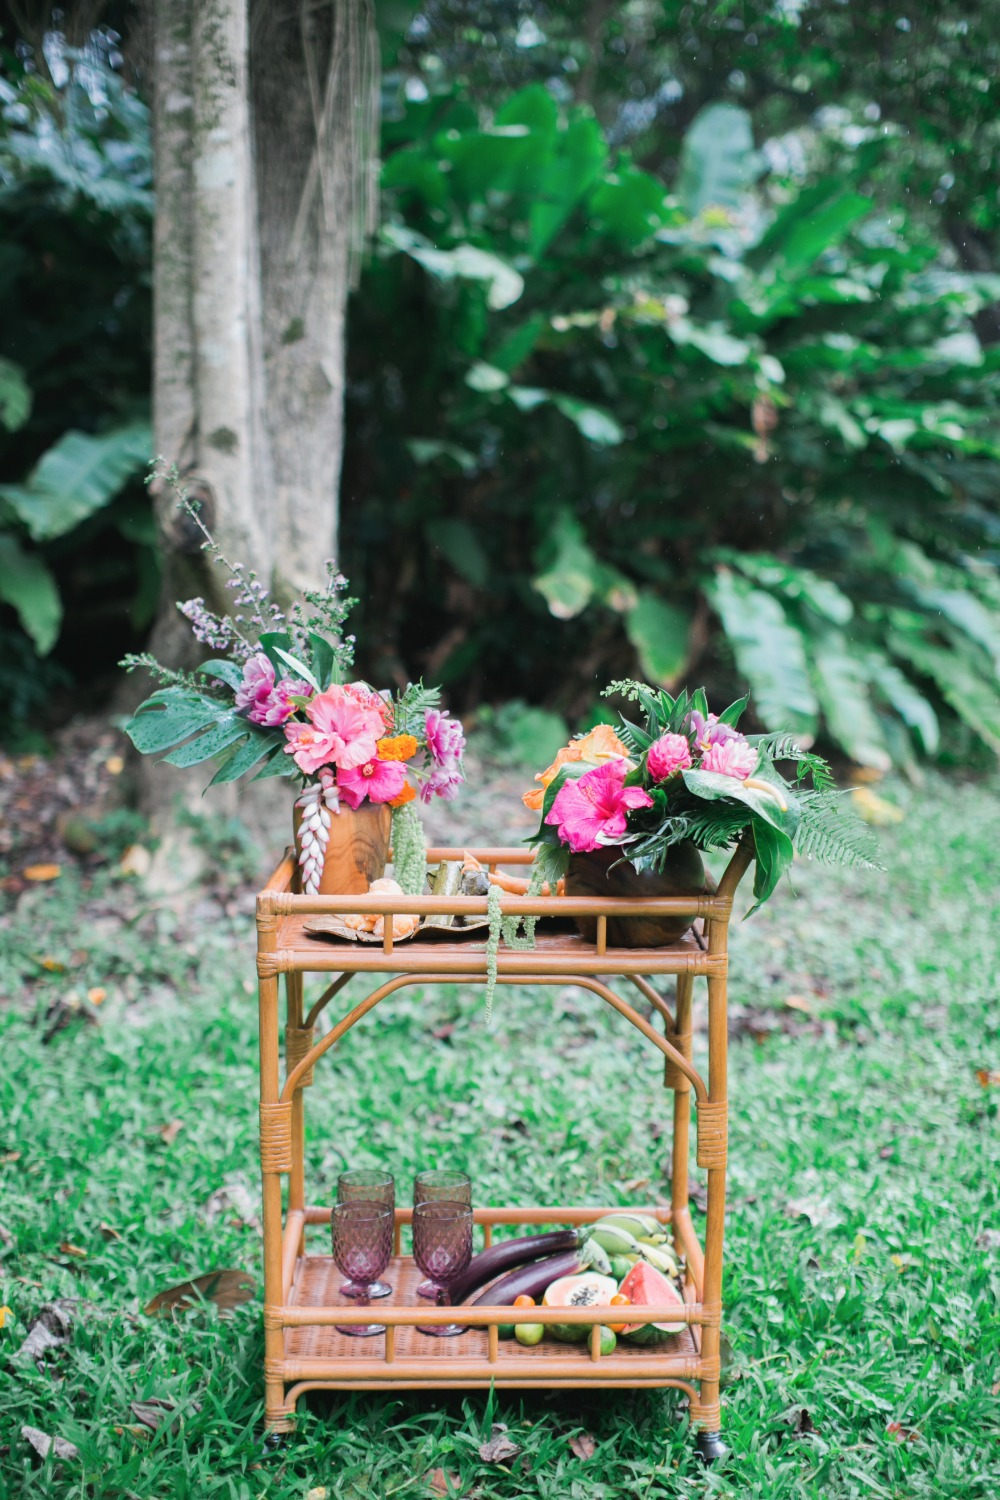 469033_hawaiian-boho-garden-wedding-inspiration.jpg